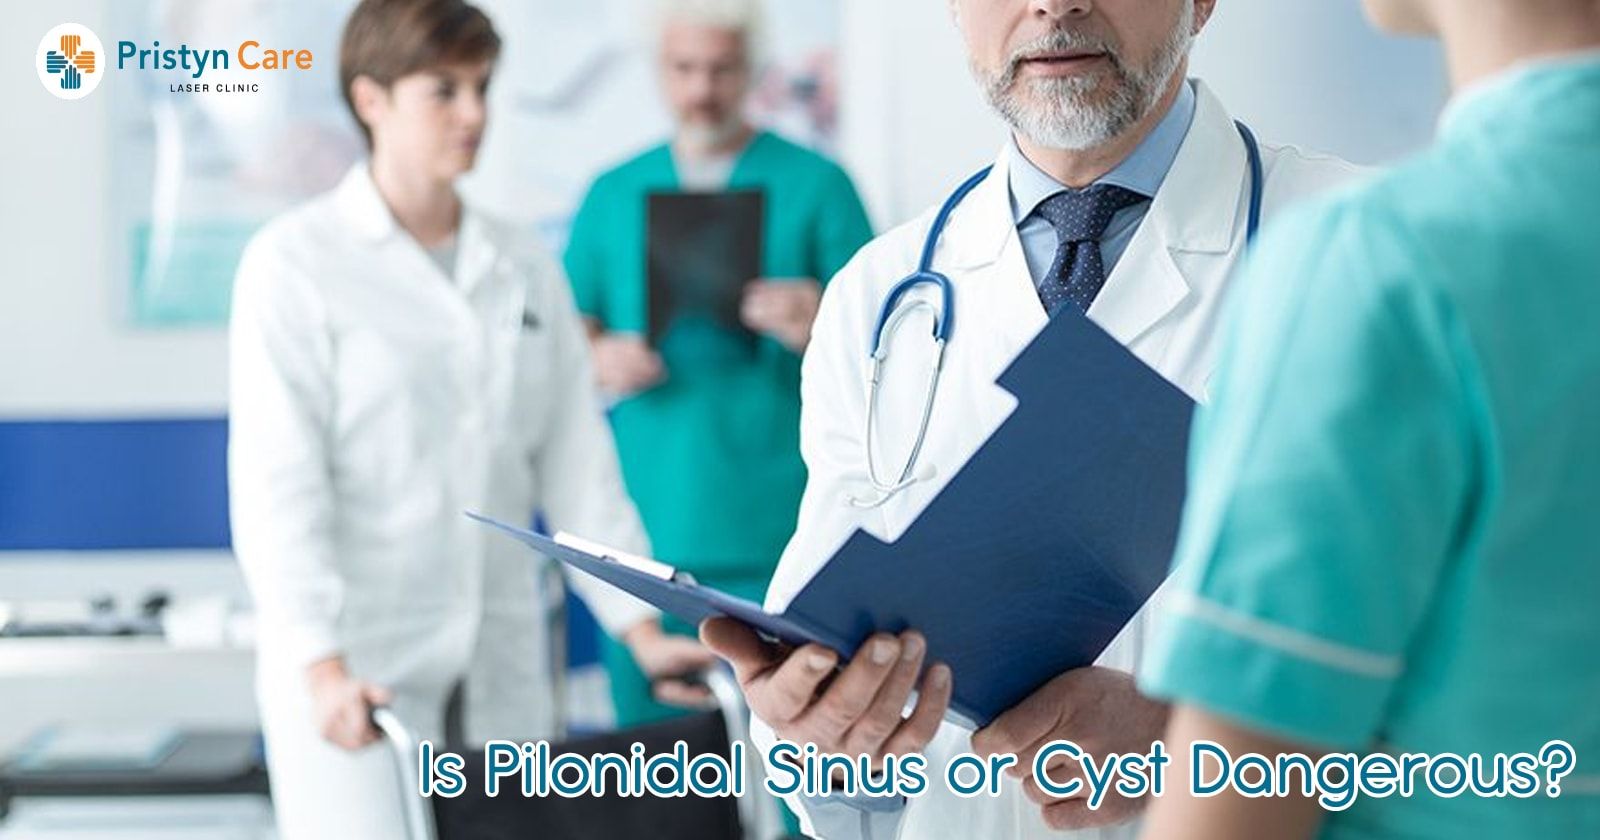 Is Pilonidal Sinus or Cyst Dangerous?